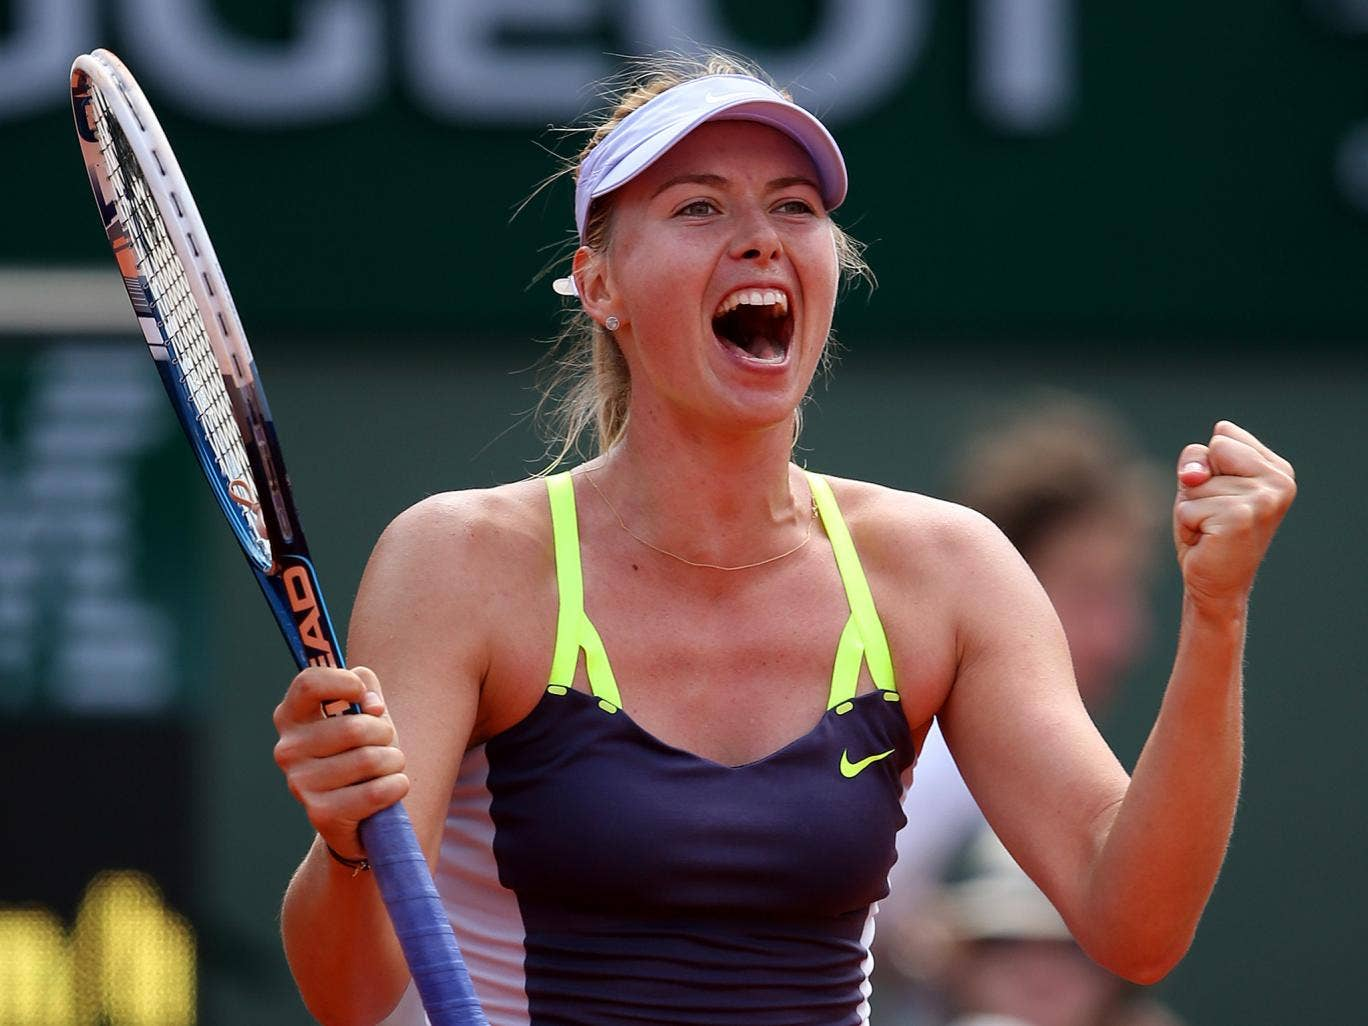 Maria Sharapova celebrates after reaching the semi-finals of the French Open